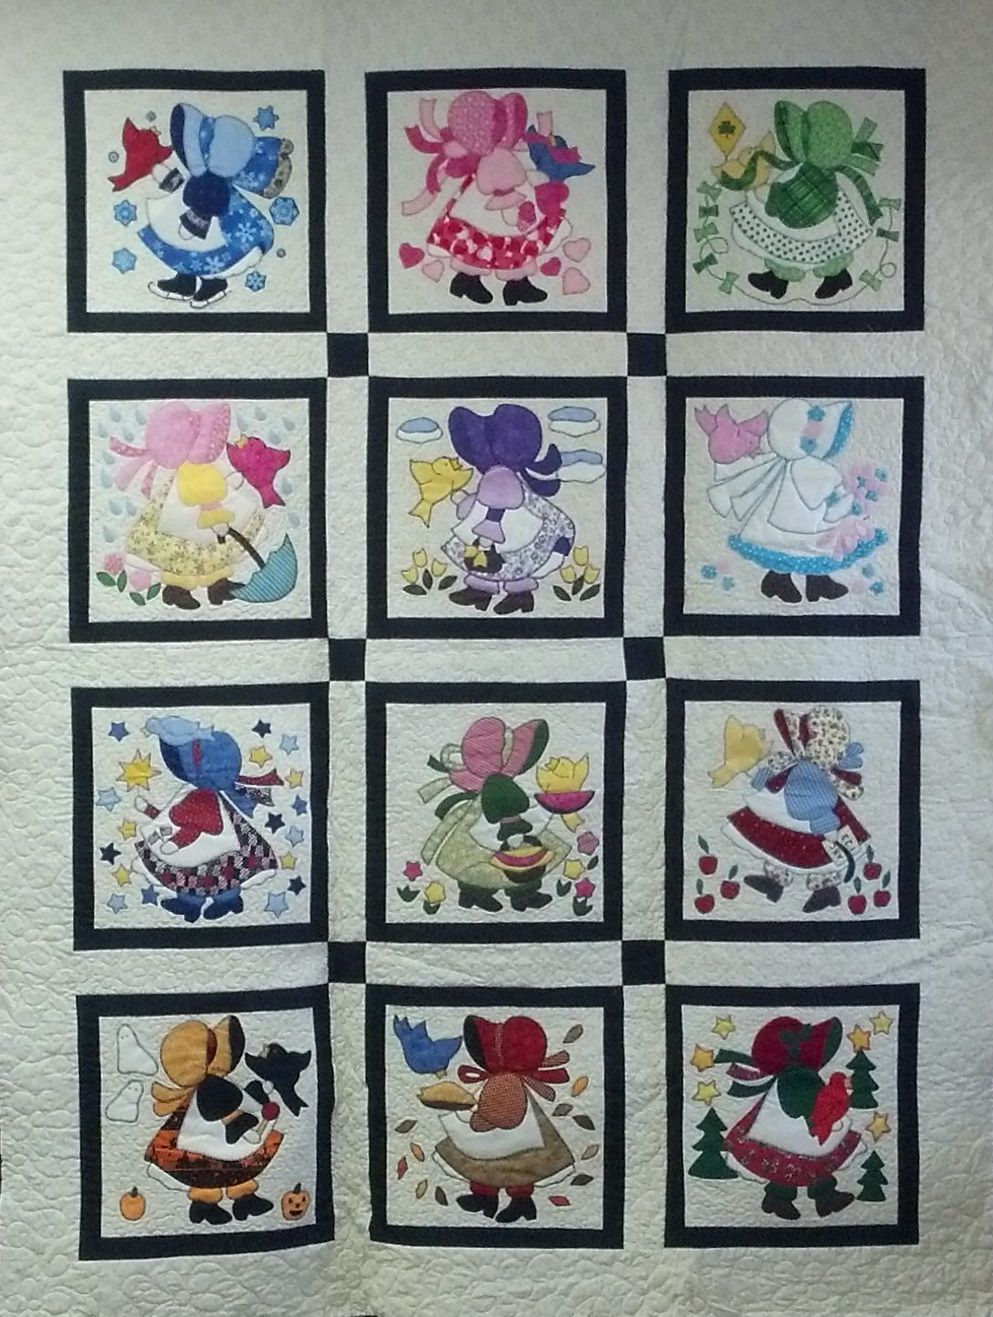 Beverly Landers Sunbonnet Sue There S A Block For Each